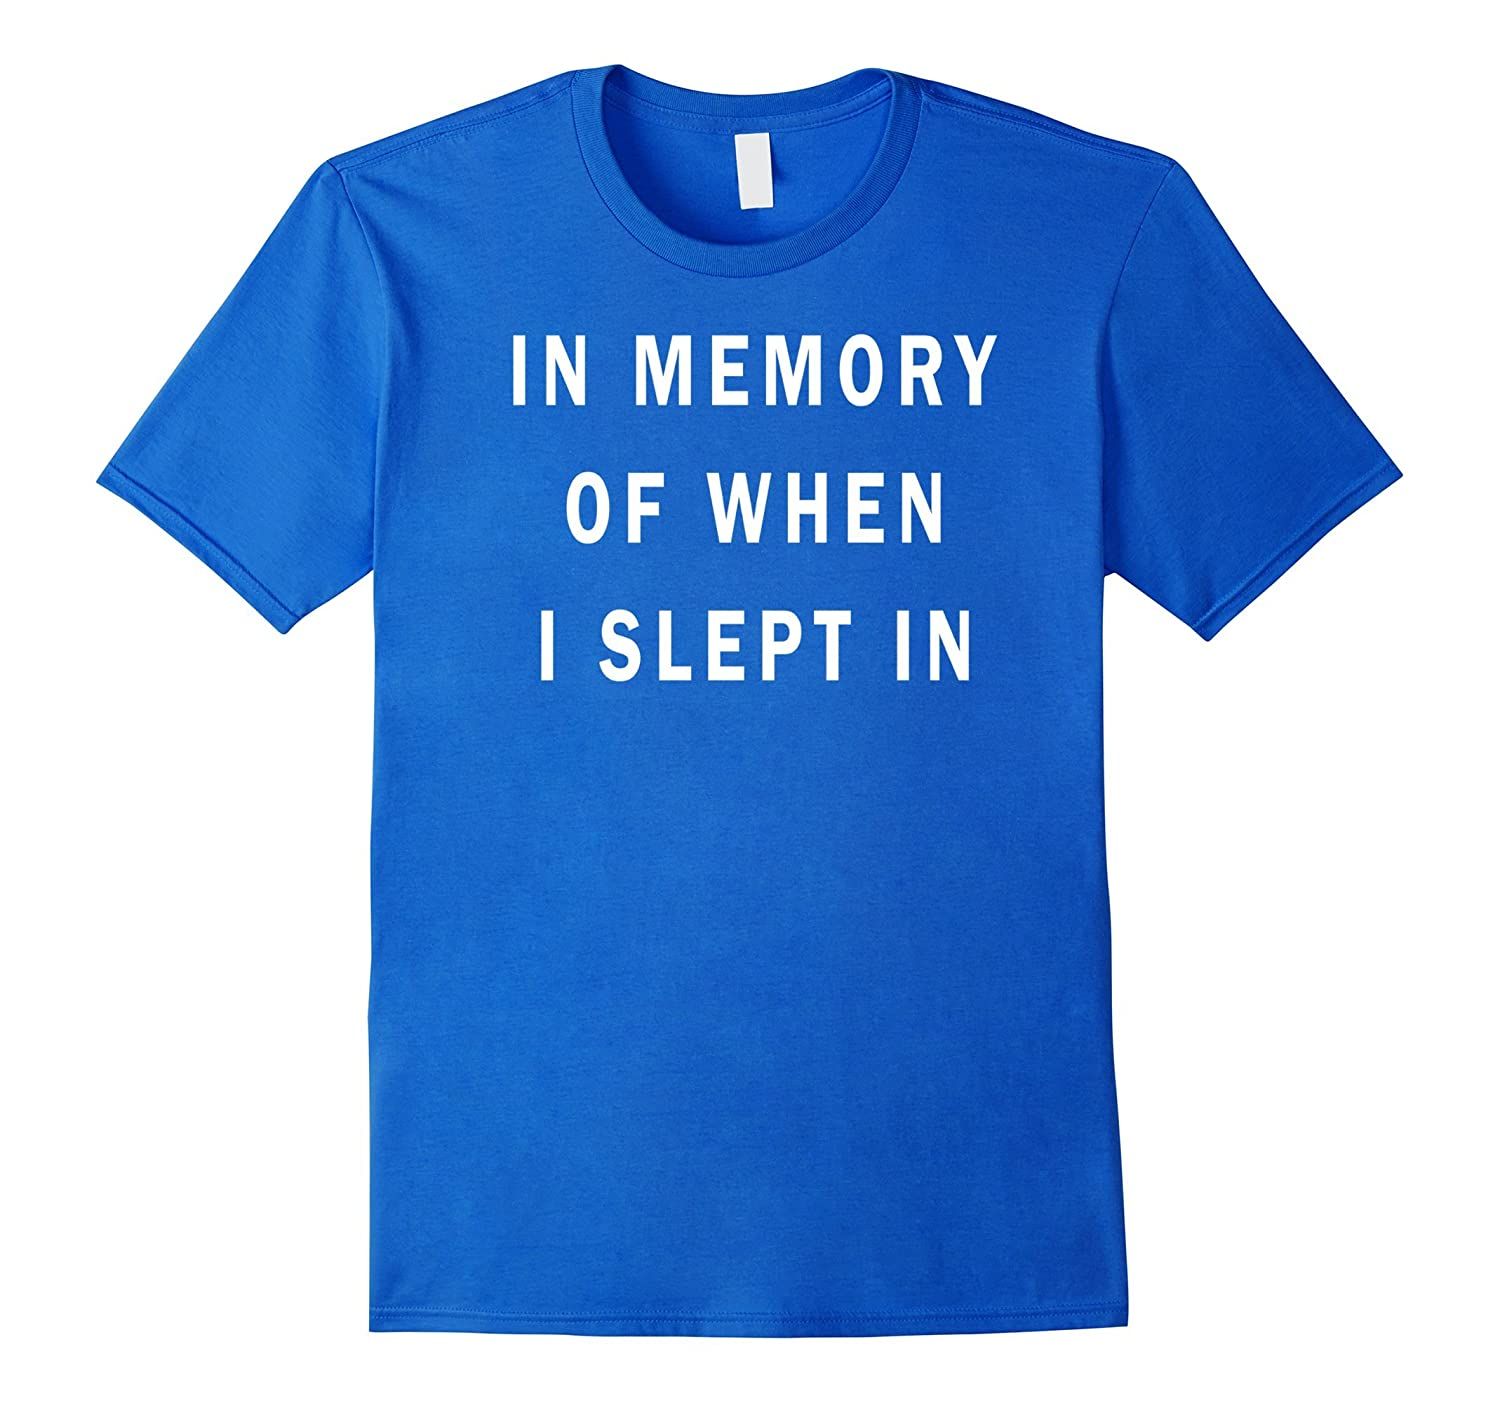 In memory of when I slept in shirt-CD